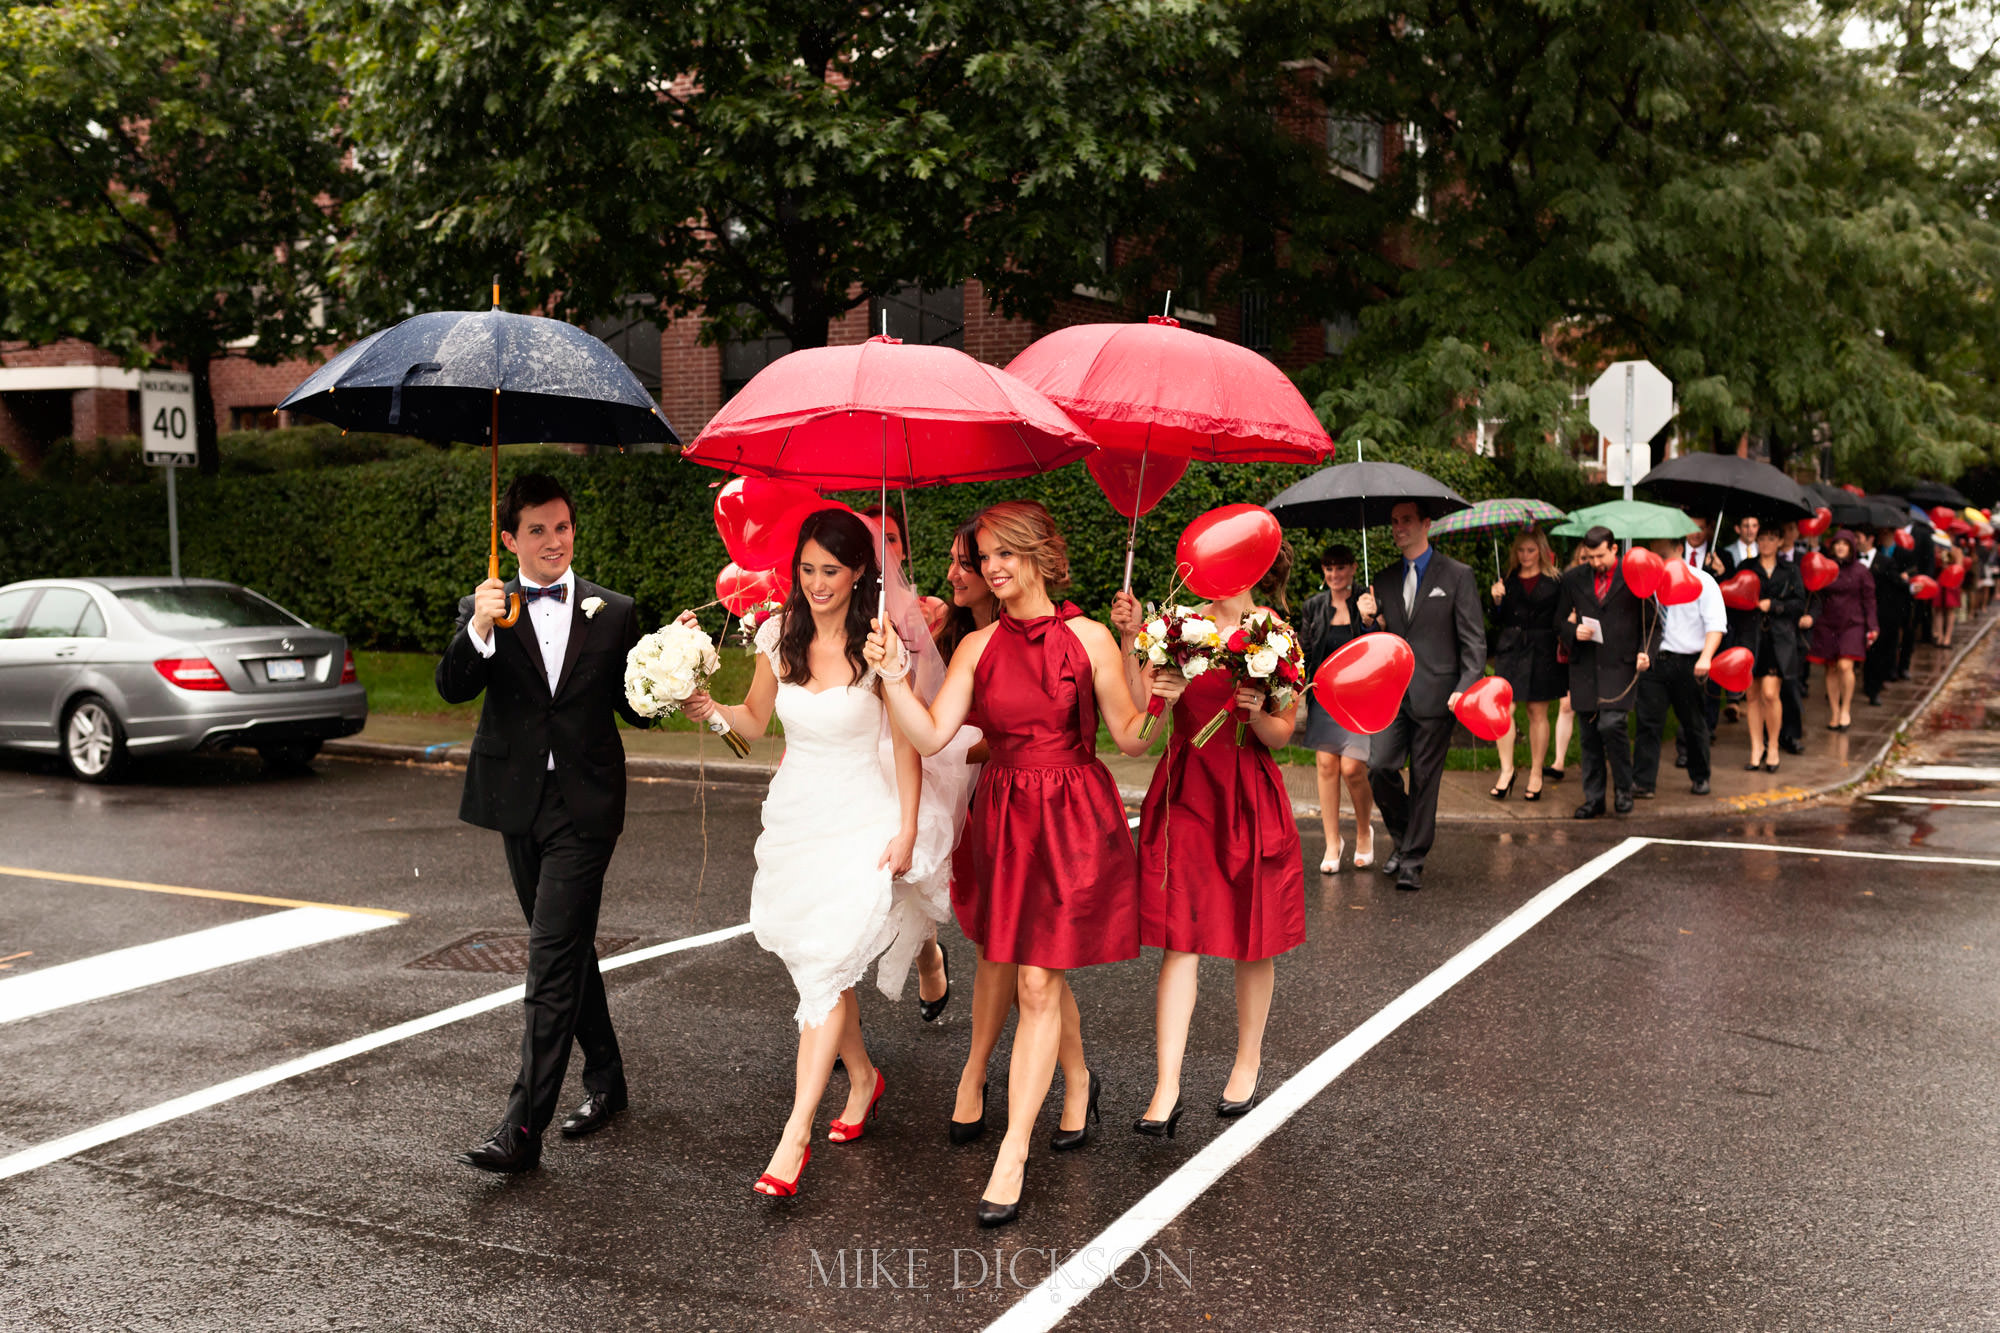 Glebe Community Centre, Ontario, Ottawa, Summer, Wedding, © Mike Dickson